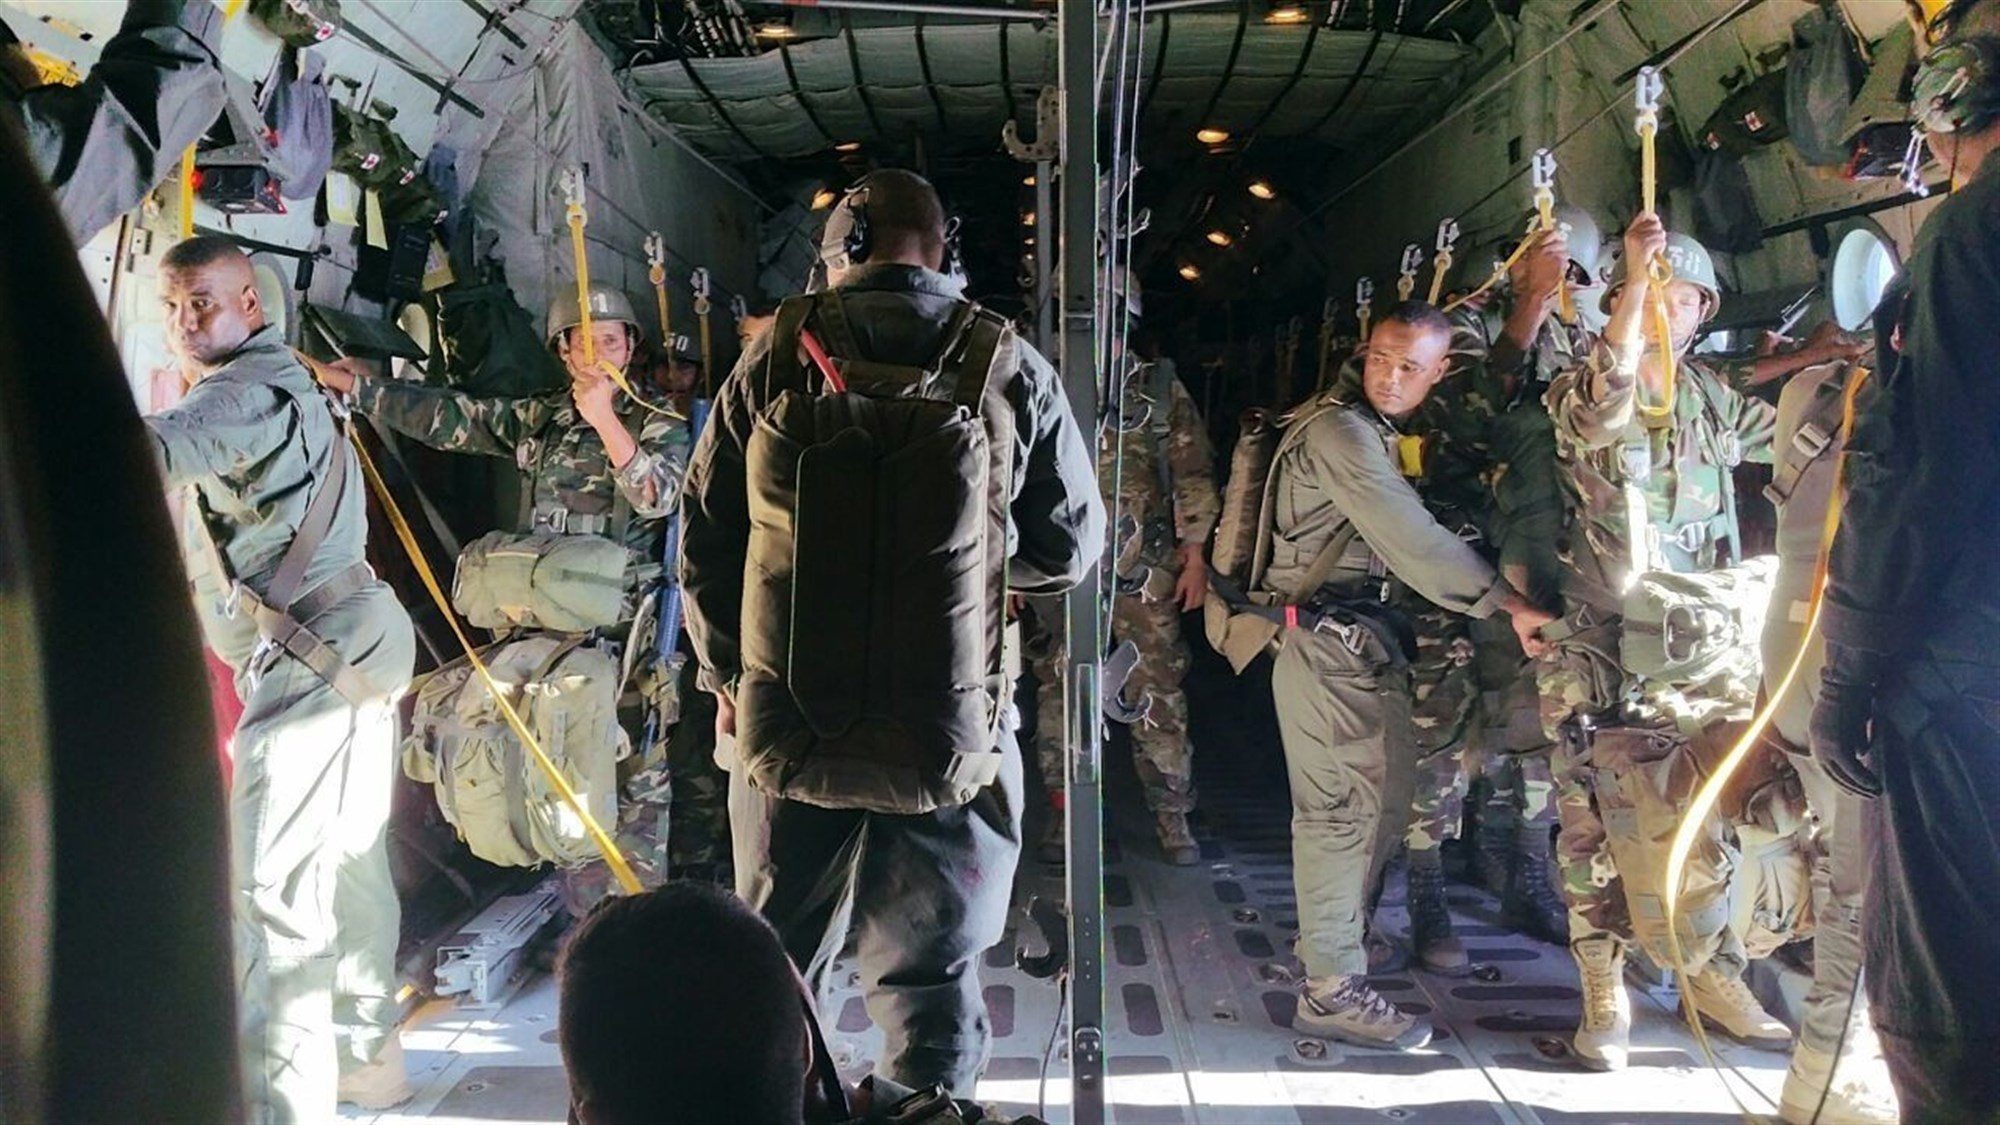 Tunisian paratroopers and jumpmasters ensure the safety of every paratrooper before conducting jumps from a C-130J aircraft. The 37 Tunisian paratroopers, equipped with T-10 parachutes, were aboard the aircraft along with 12 paratroopers from the 16th Special Troops Battalion.